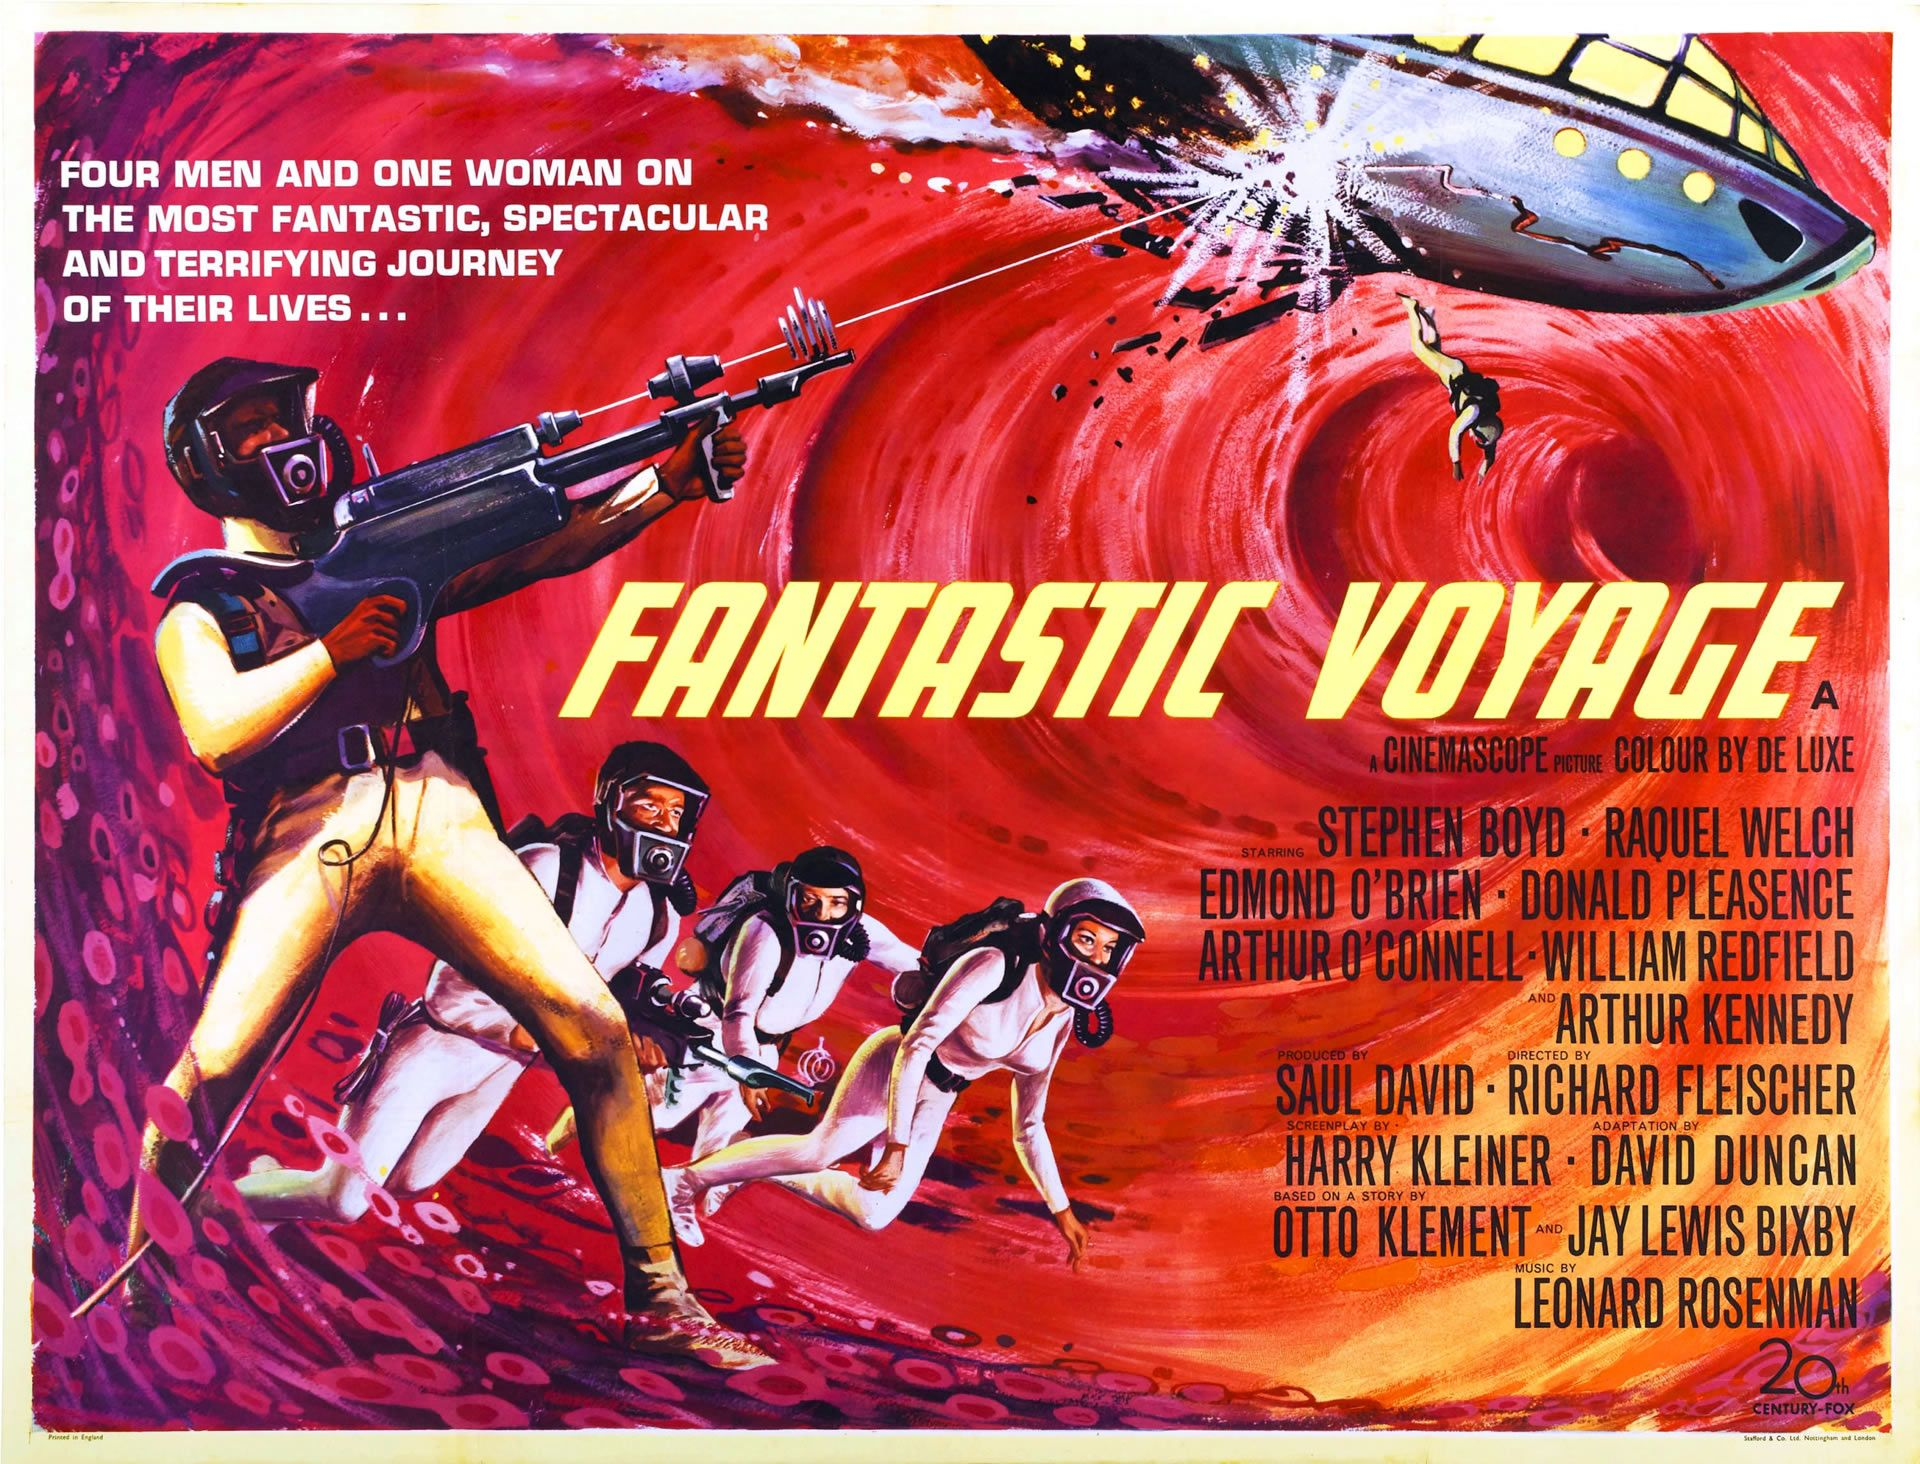 The studio is hoping that Fantastic Voyage will be an event-sized tentpole for them  sc 1 st  Pinterest & The studio is hoping that Fantastic Voyage will be an event-sized ...